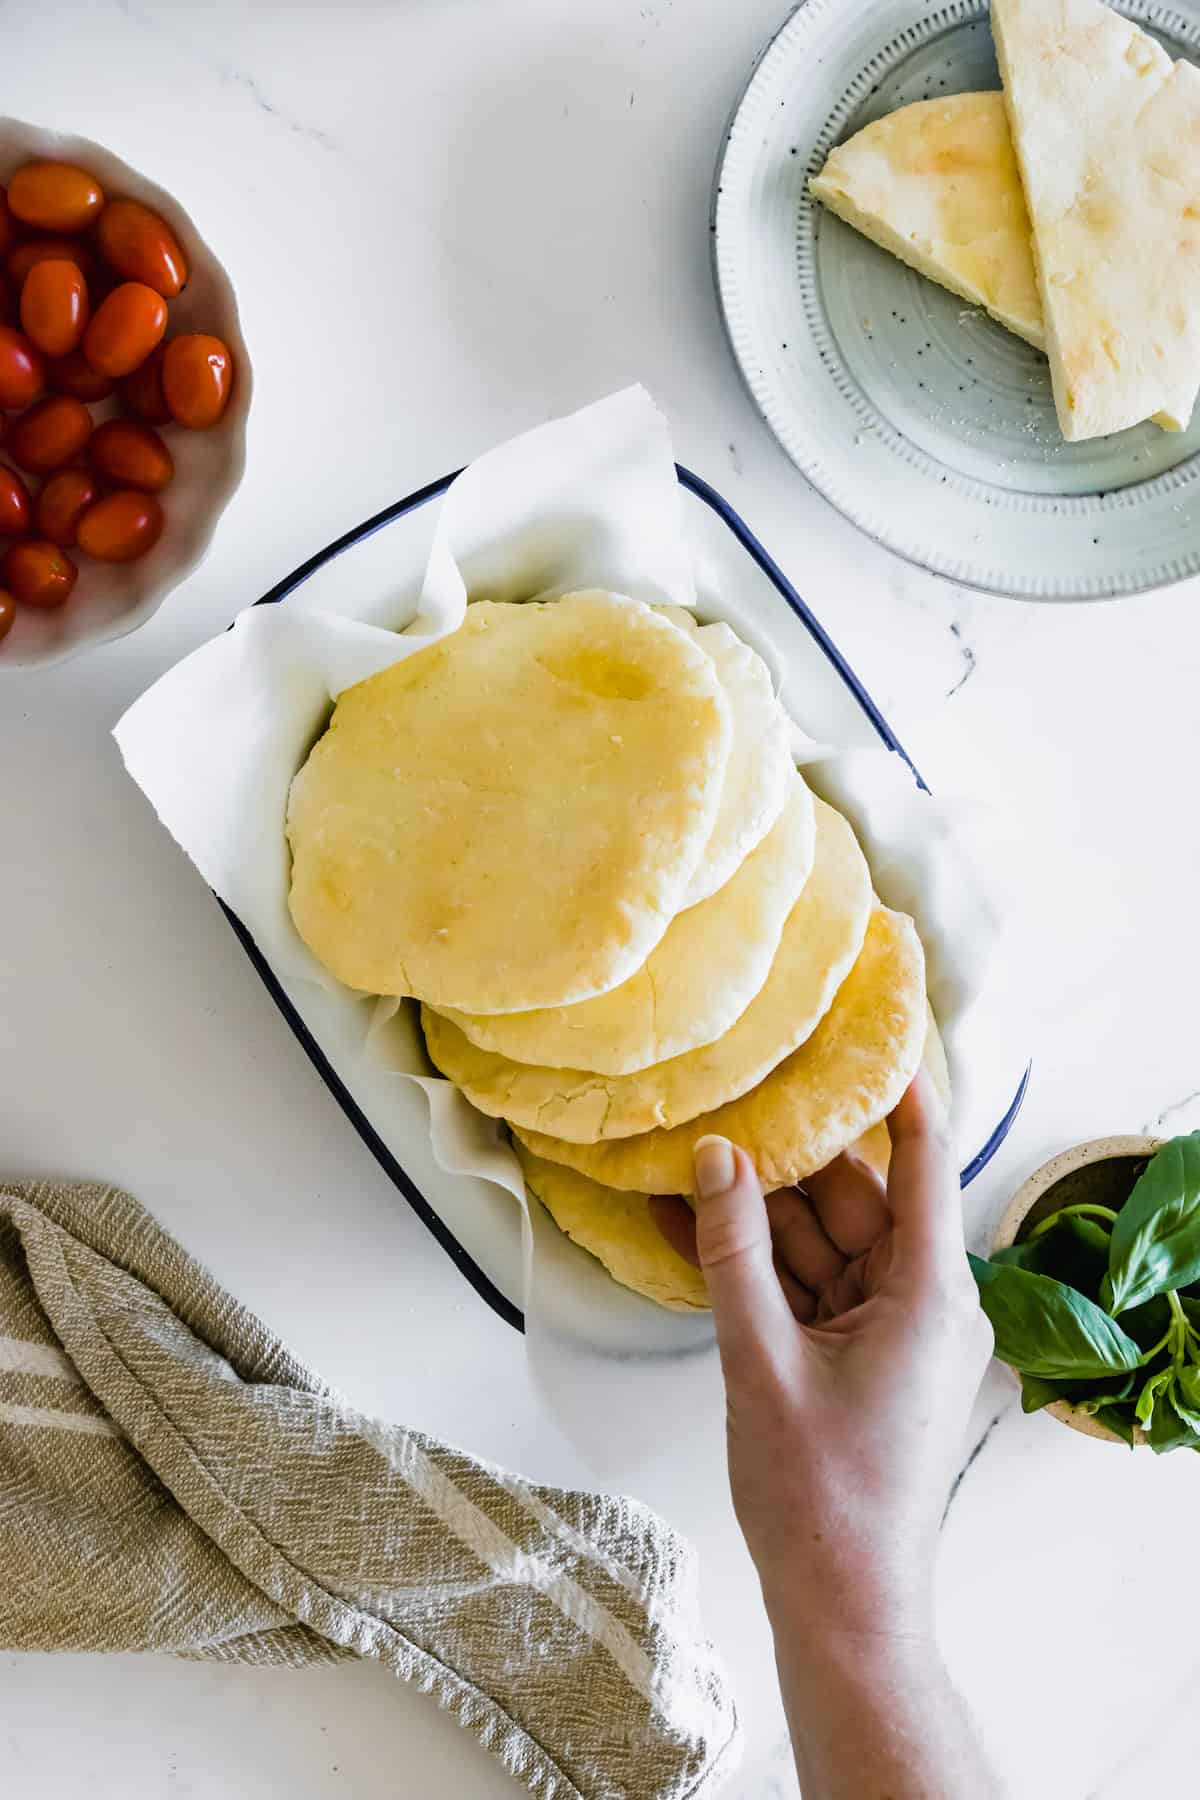 A Hand Grabbing a Piece of Pita Bread From a White Platter with a Blue Rim